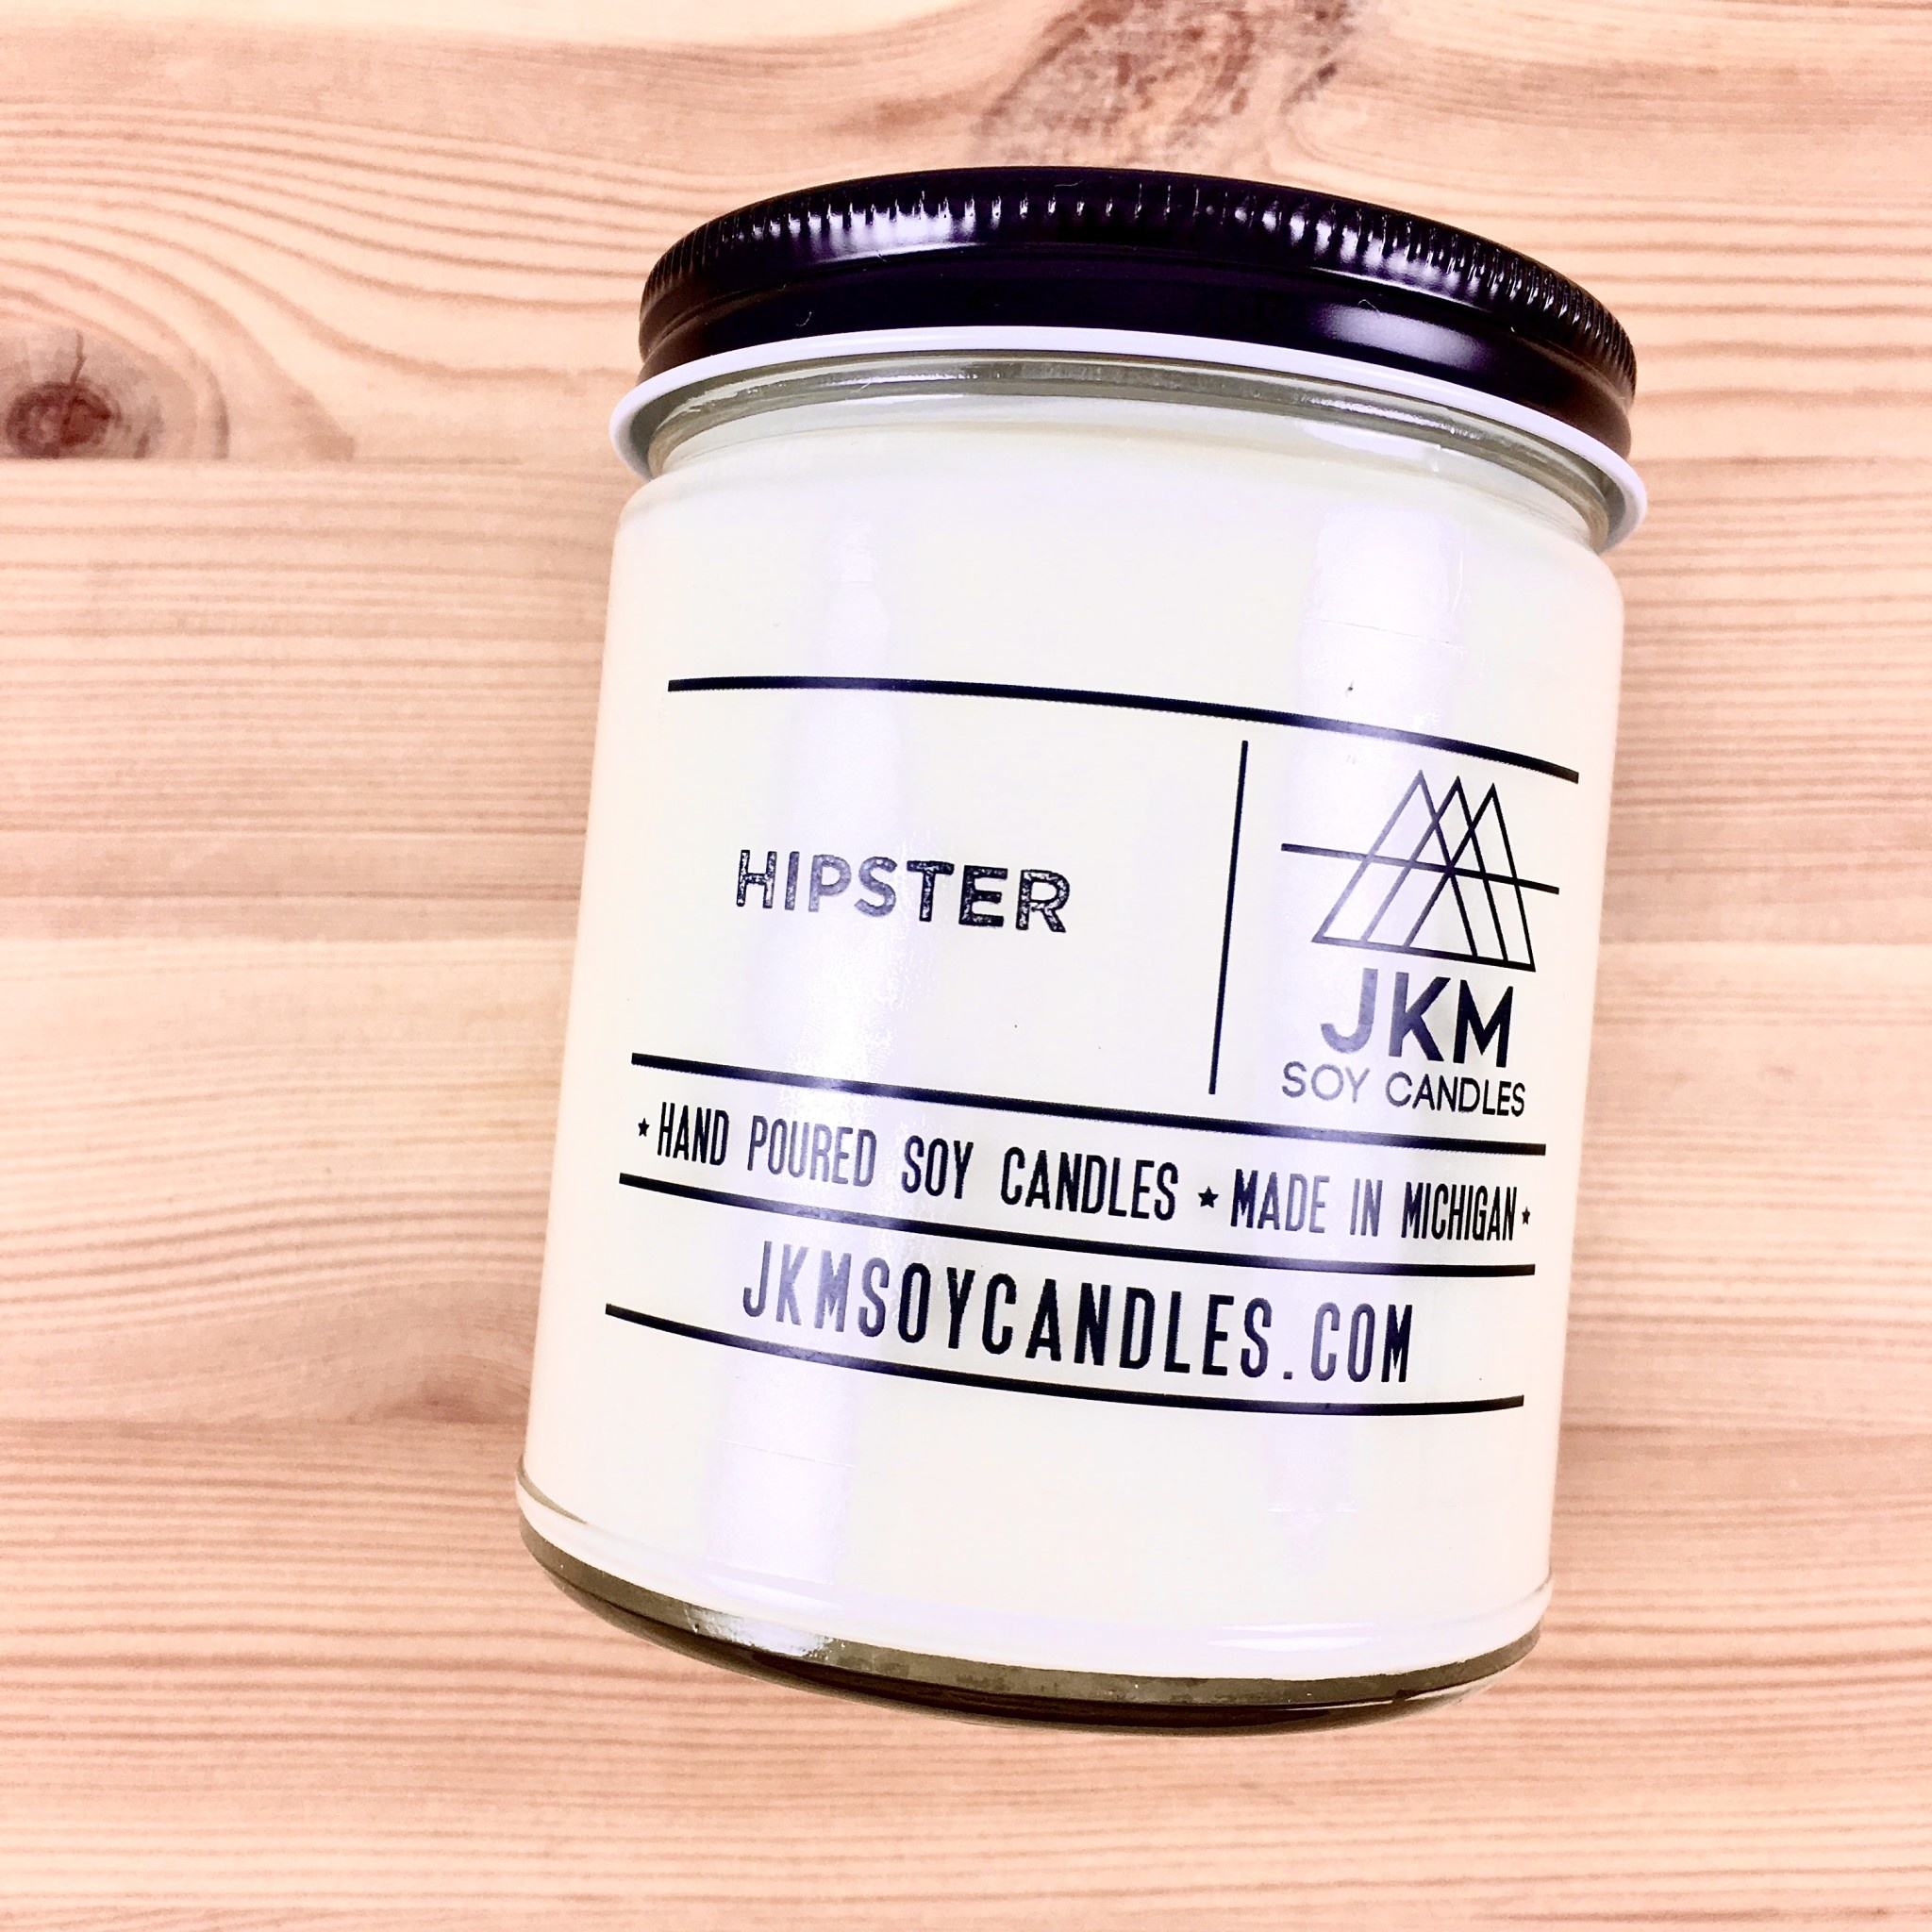 JKM Soy Candles BW: Hipster Soy Candle